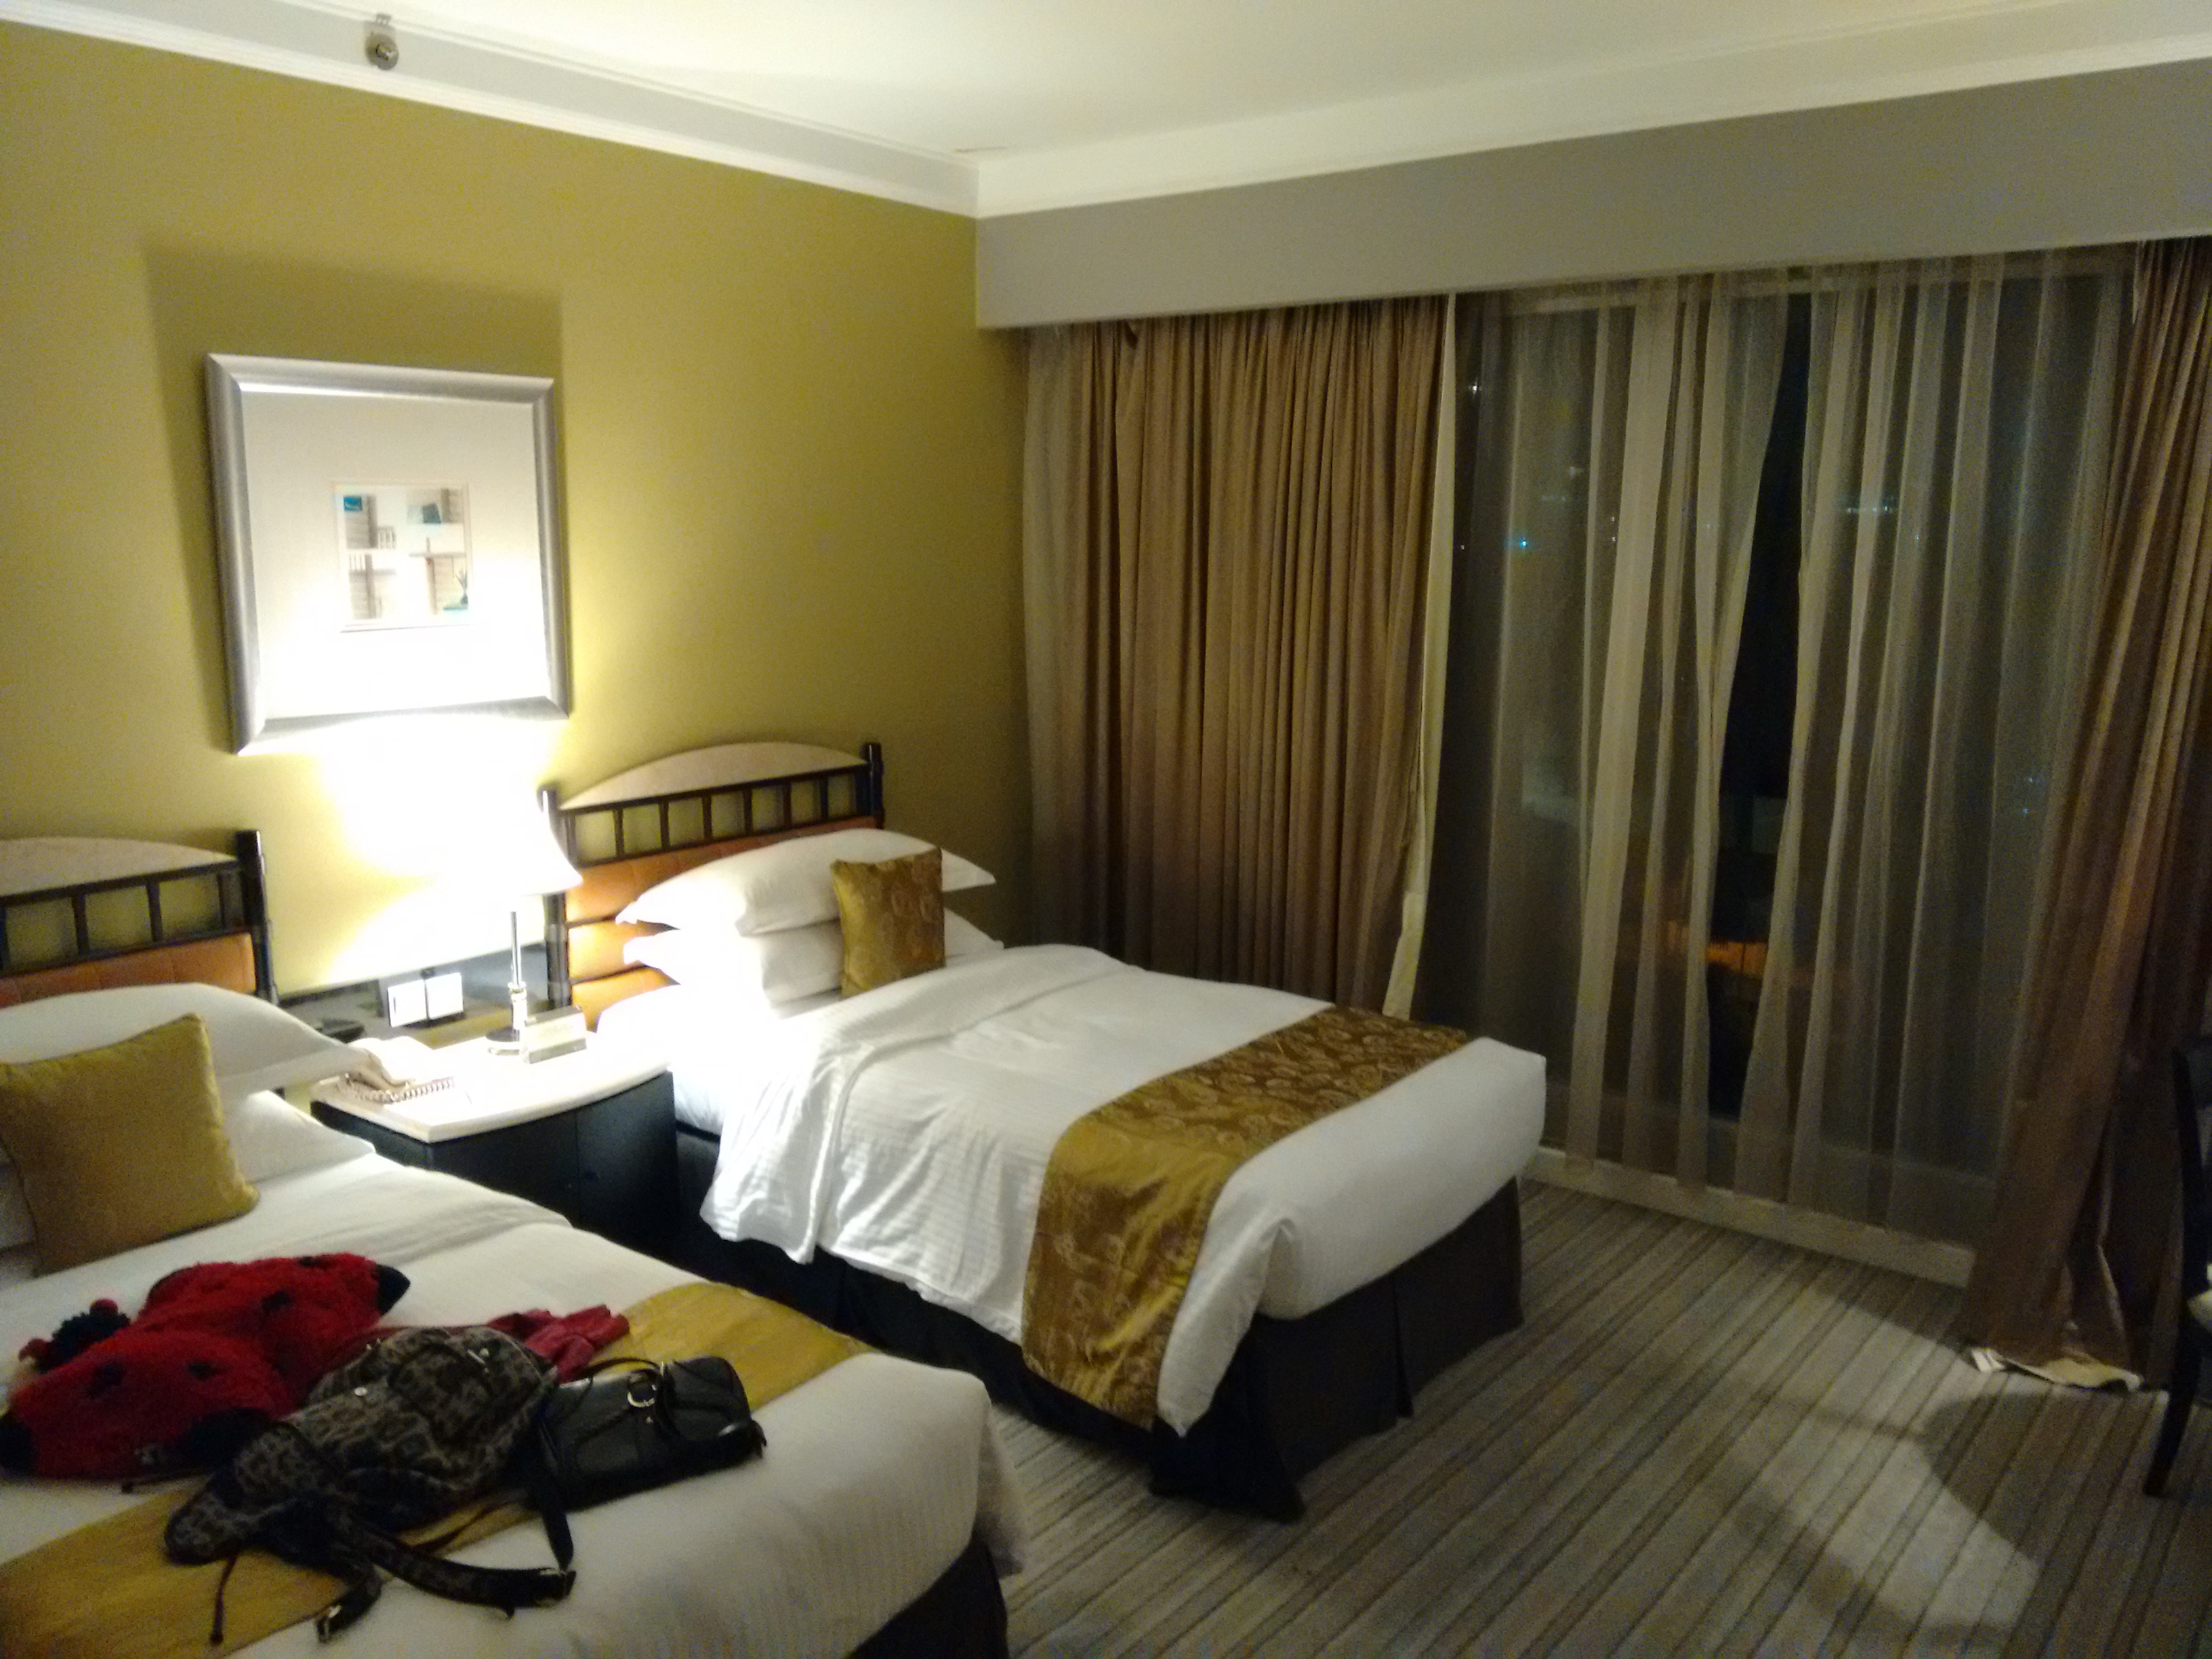 johor baharu chat rooms Johor bahru nightlife it has a relaxing ambience with private and luxuriously spacious suites and massage rooms 222 jalan sungai chat hyatt regency johor bahru.